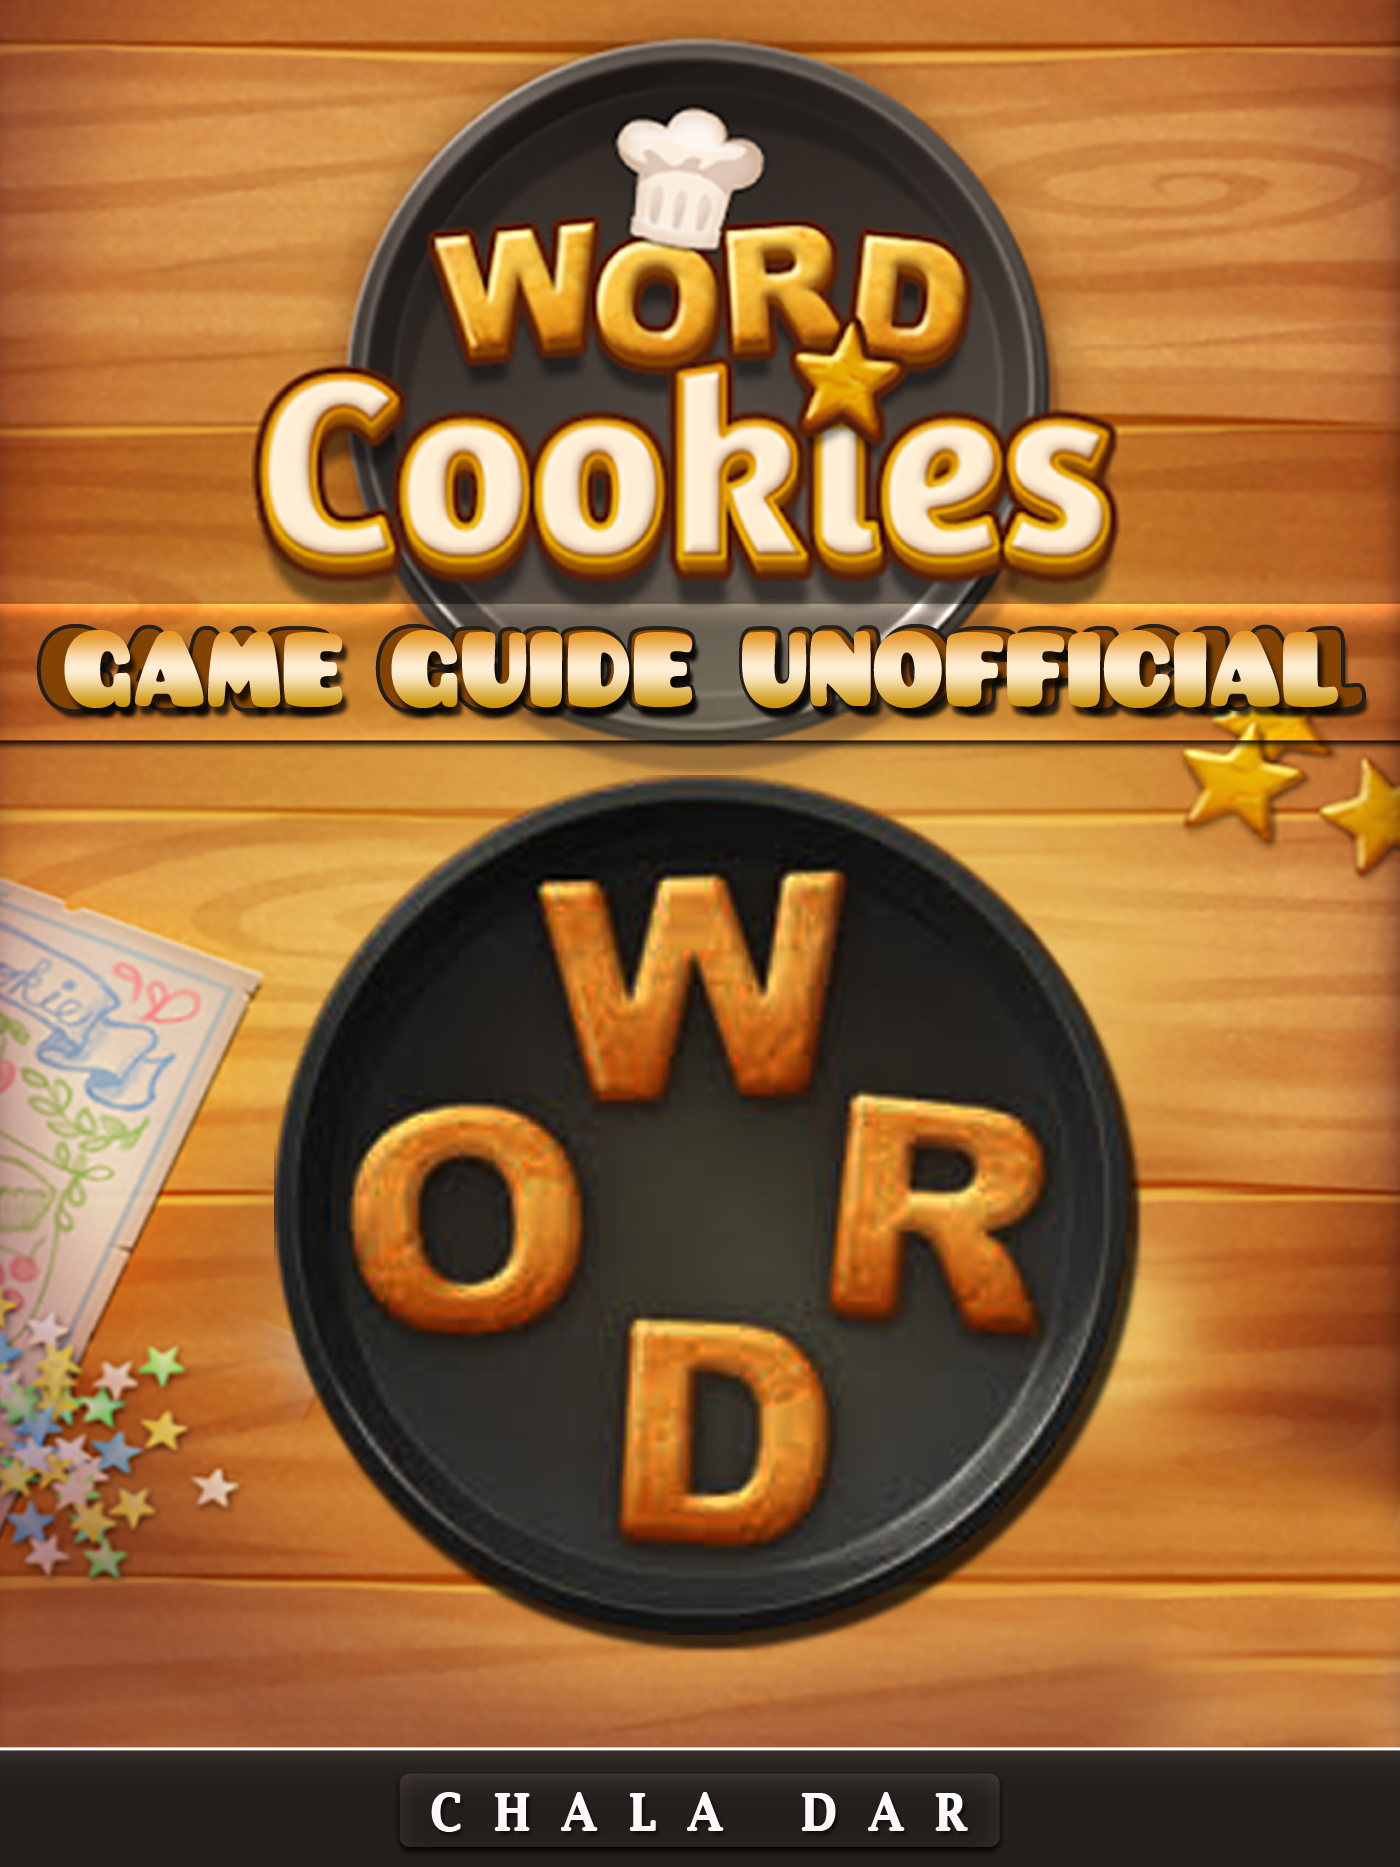 Word Cookies Game Guide Unofficial By Chala Dar